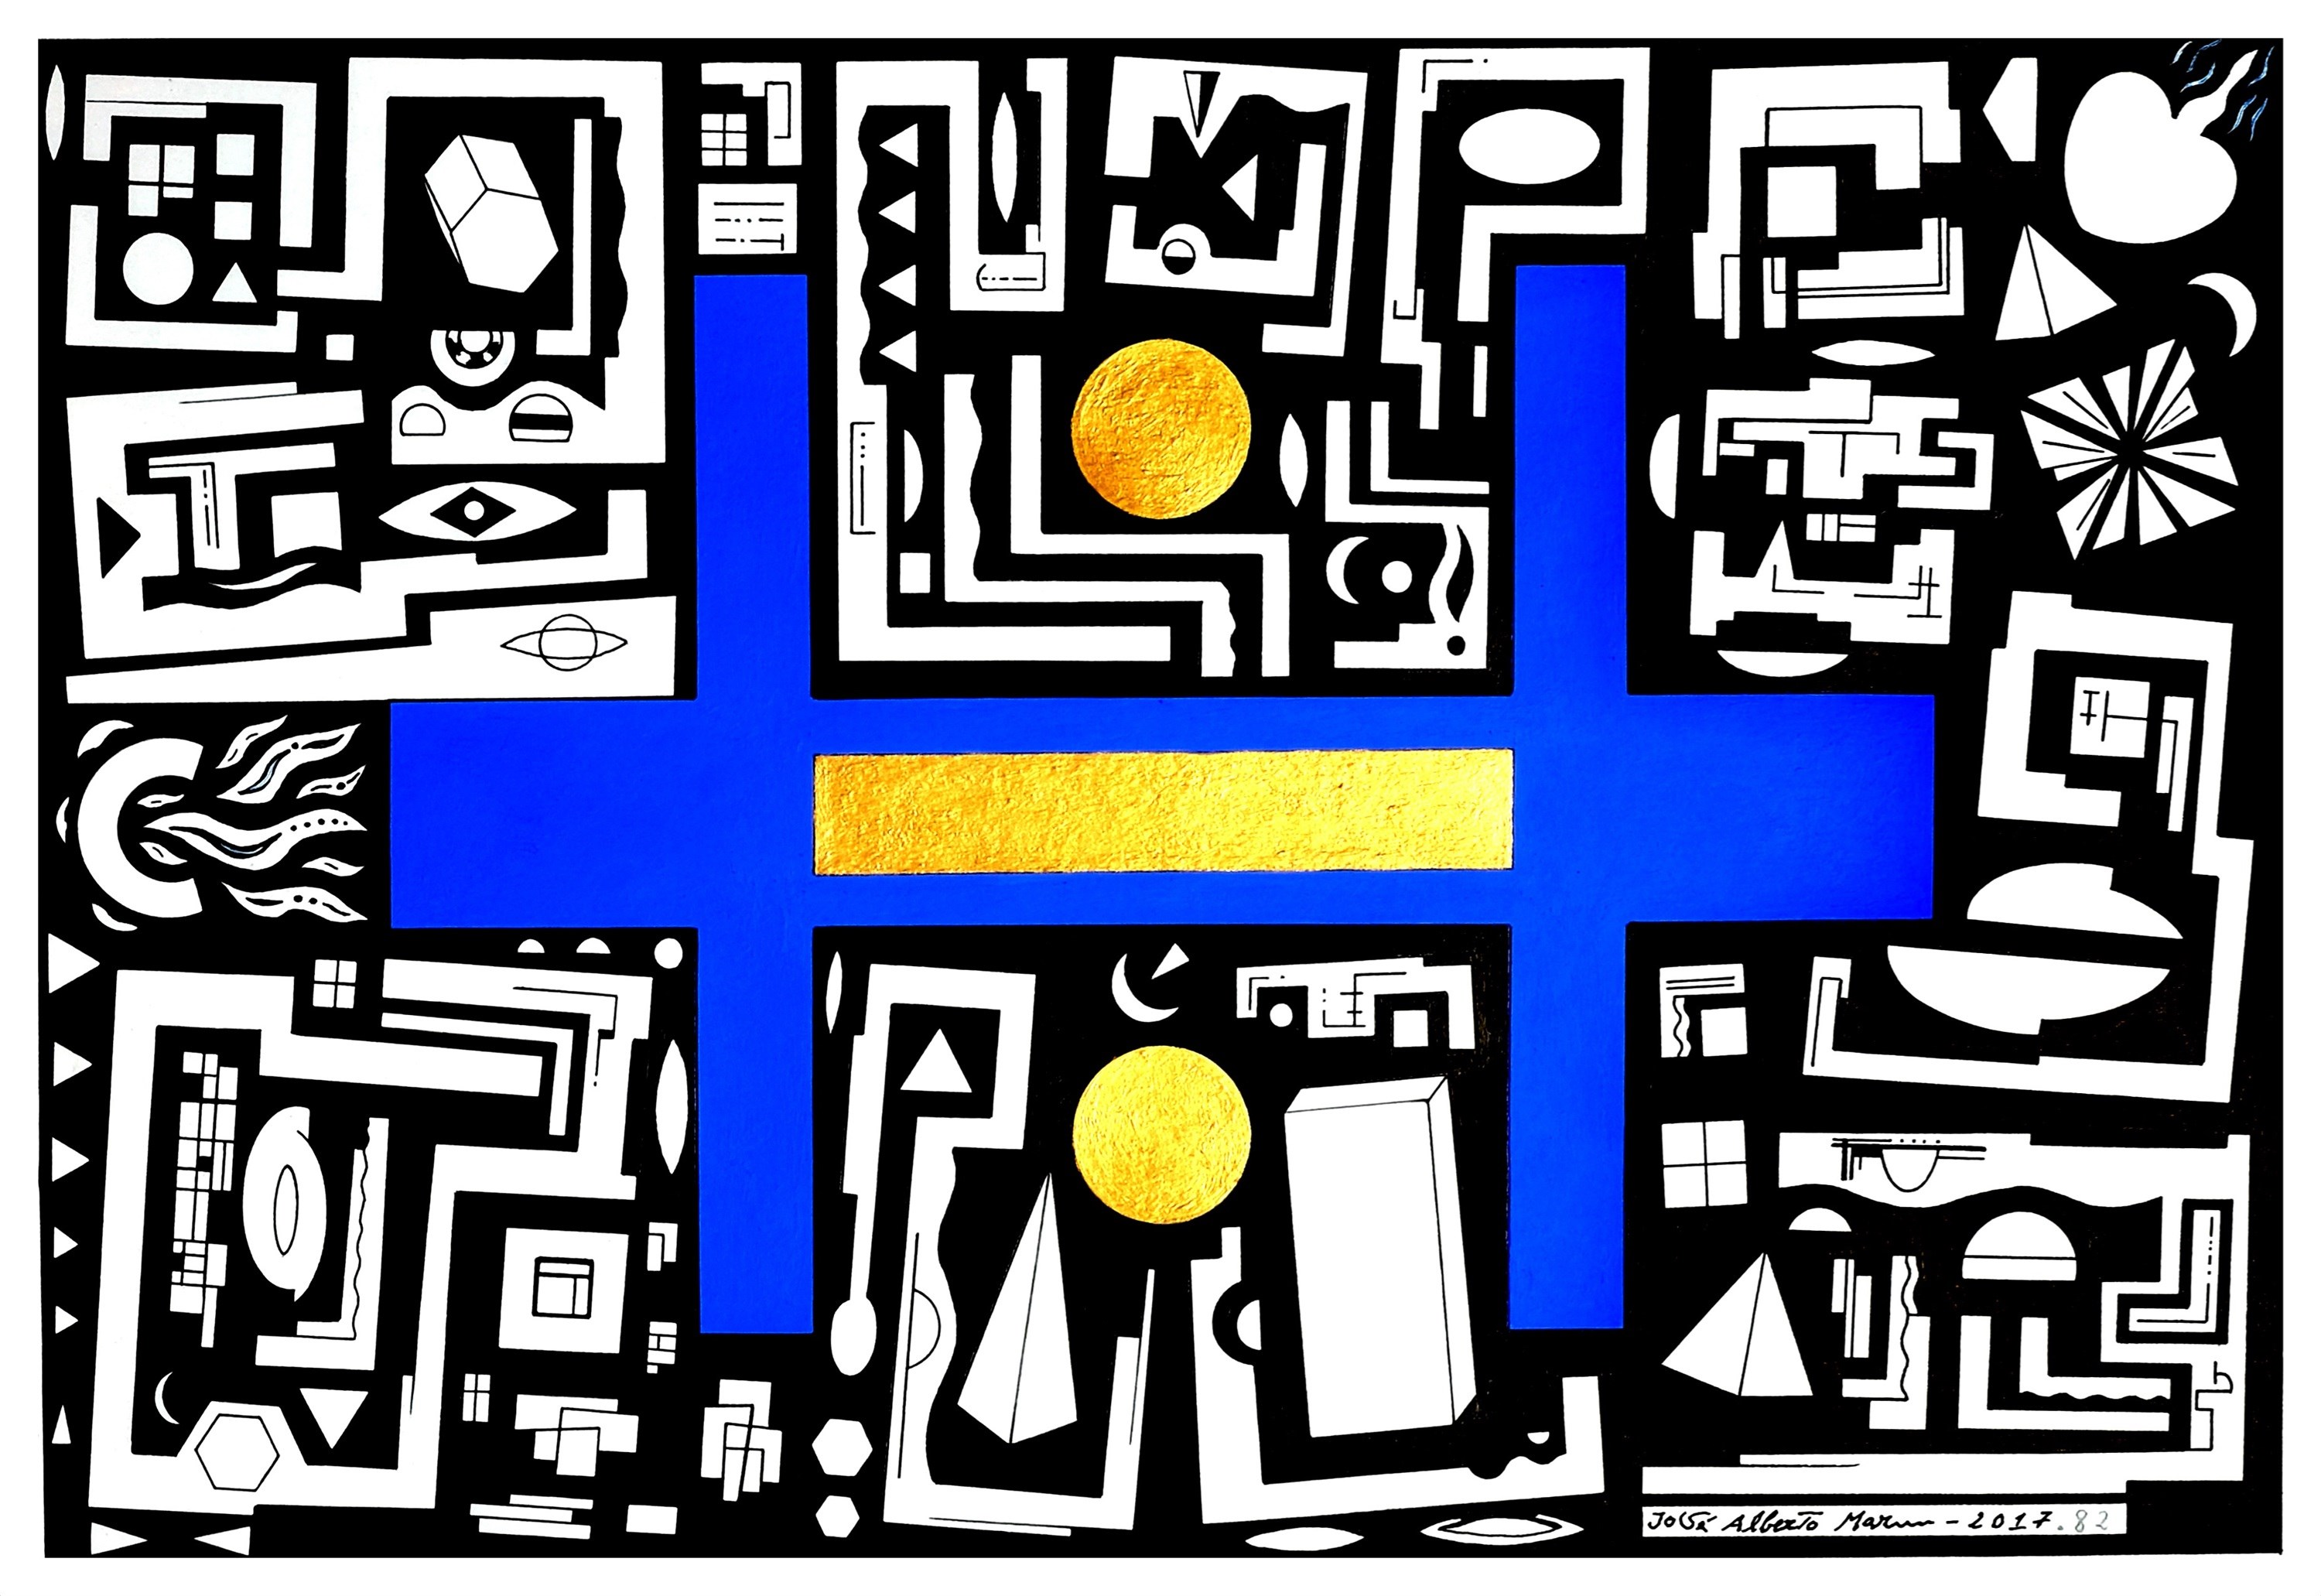 Série: pequenas sabedorias. Series: small wisdoms (Nº82), original Geometric Acrylic Painting by José Alberto Mar